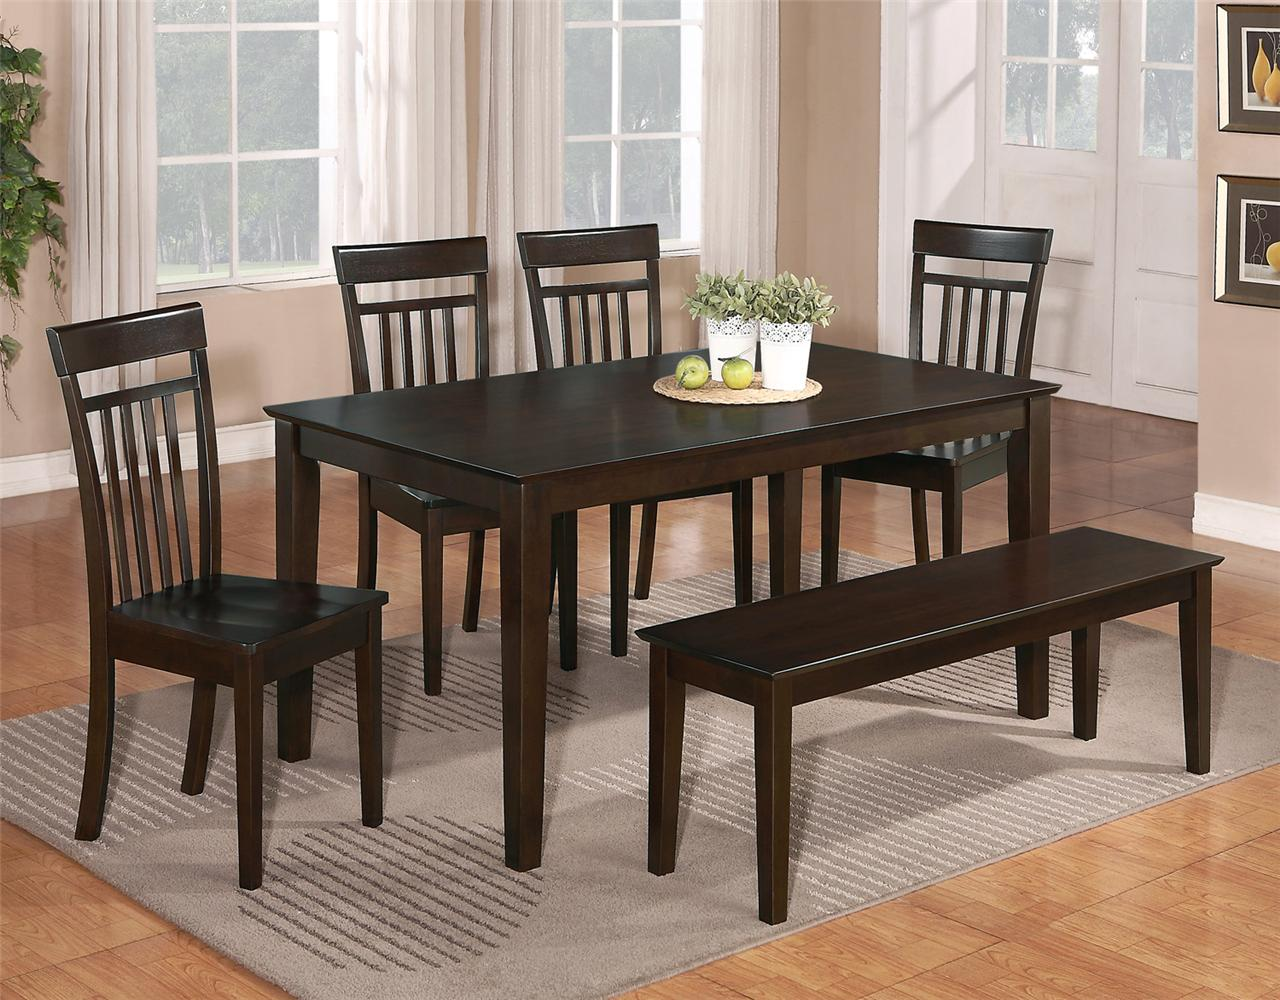 6 pc dinette kitchen dining room set table w 4 wood chair for Table and bench set